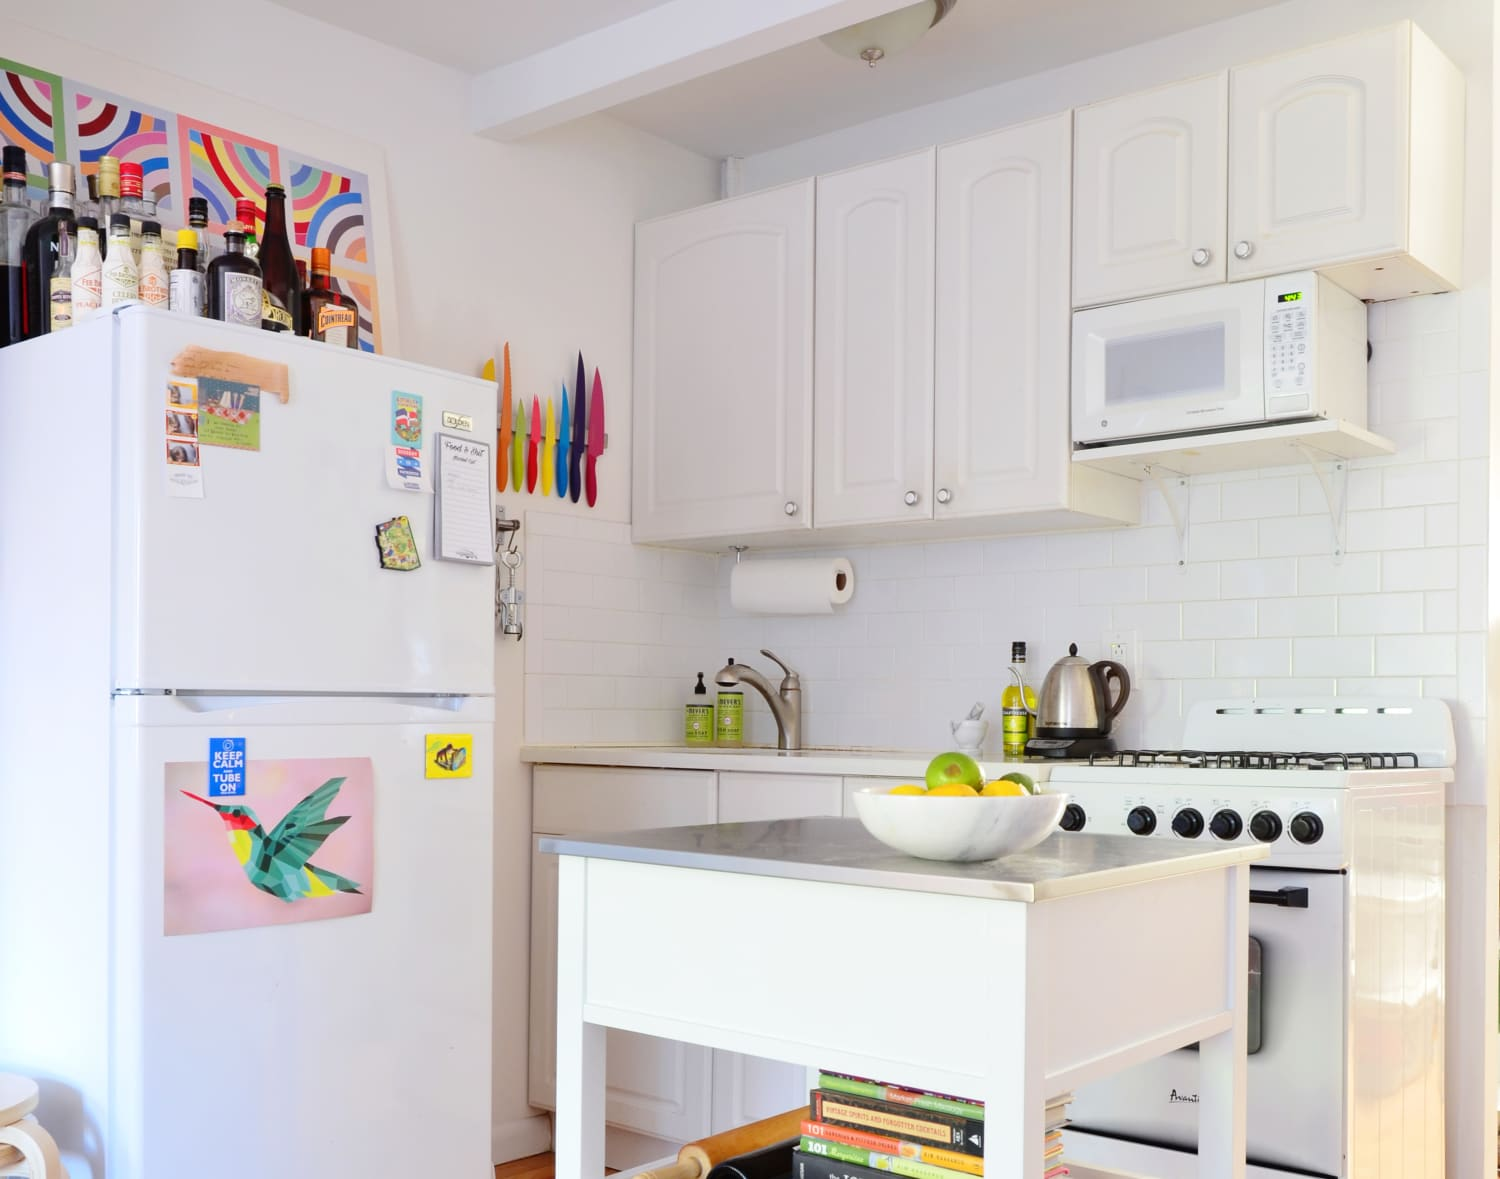 15 Organizers That�ll Make a Small Kitchen So Much Better